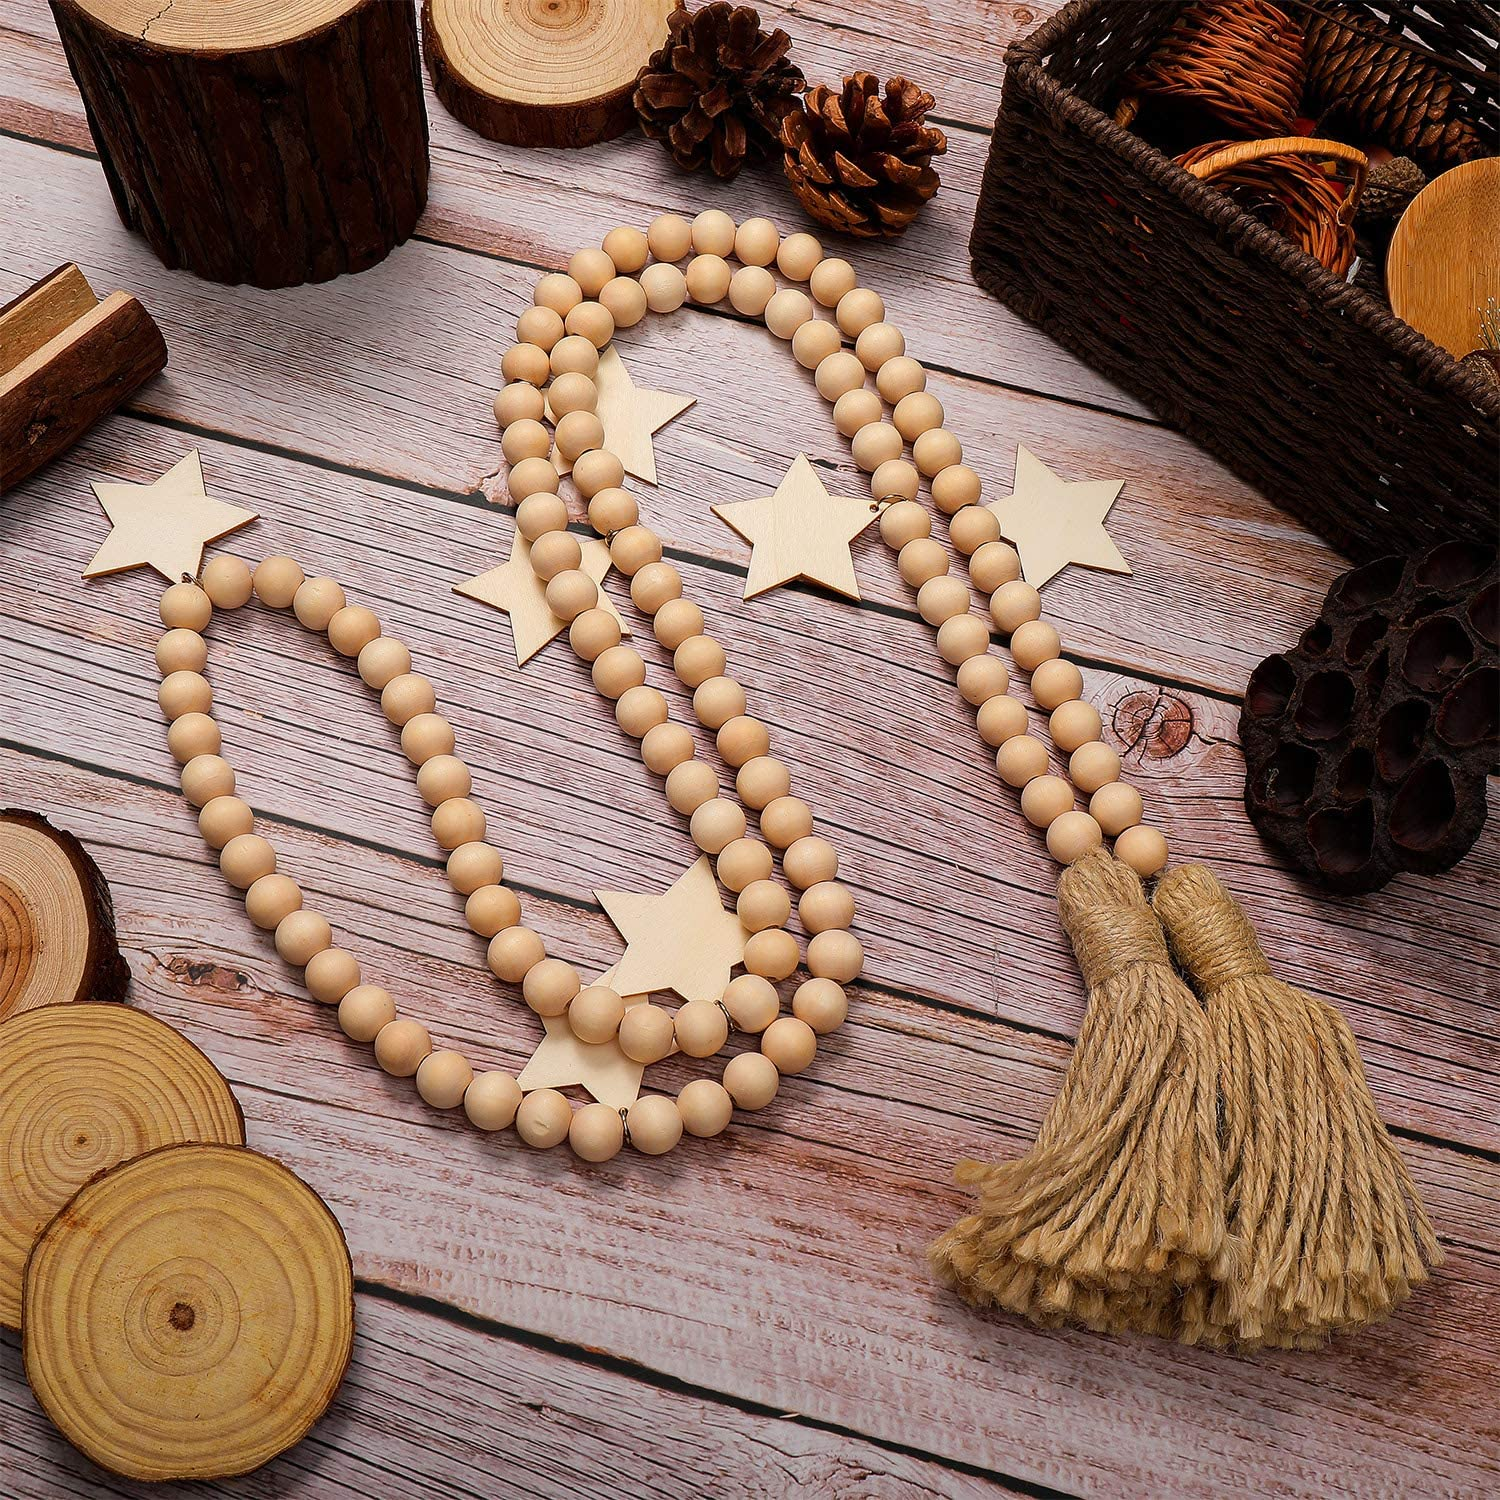 2 Pieces Wood Bead Garland Rustic Farmhouse Wooden Bead Tassel Garland with Wooden Stars for Thanksgiving Day Christmas Bohemian Nursery Home Wall Hanging Decoration